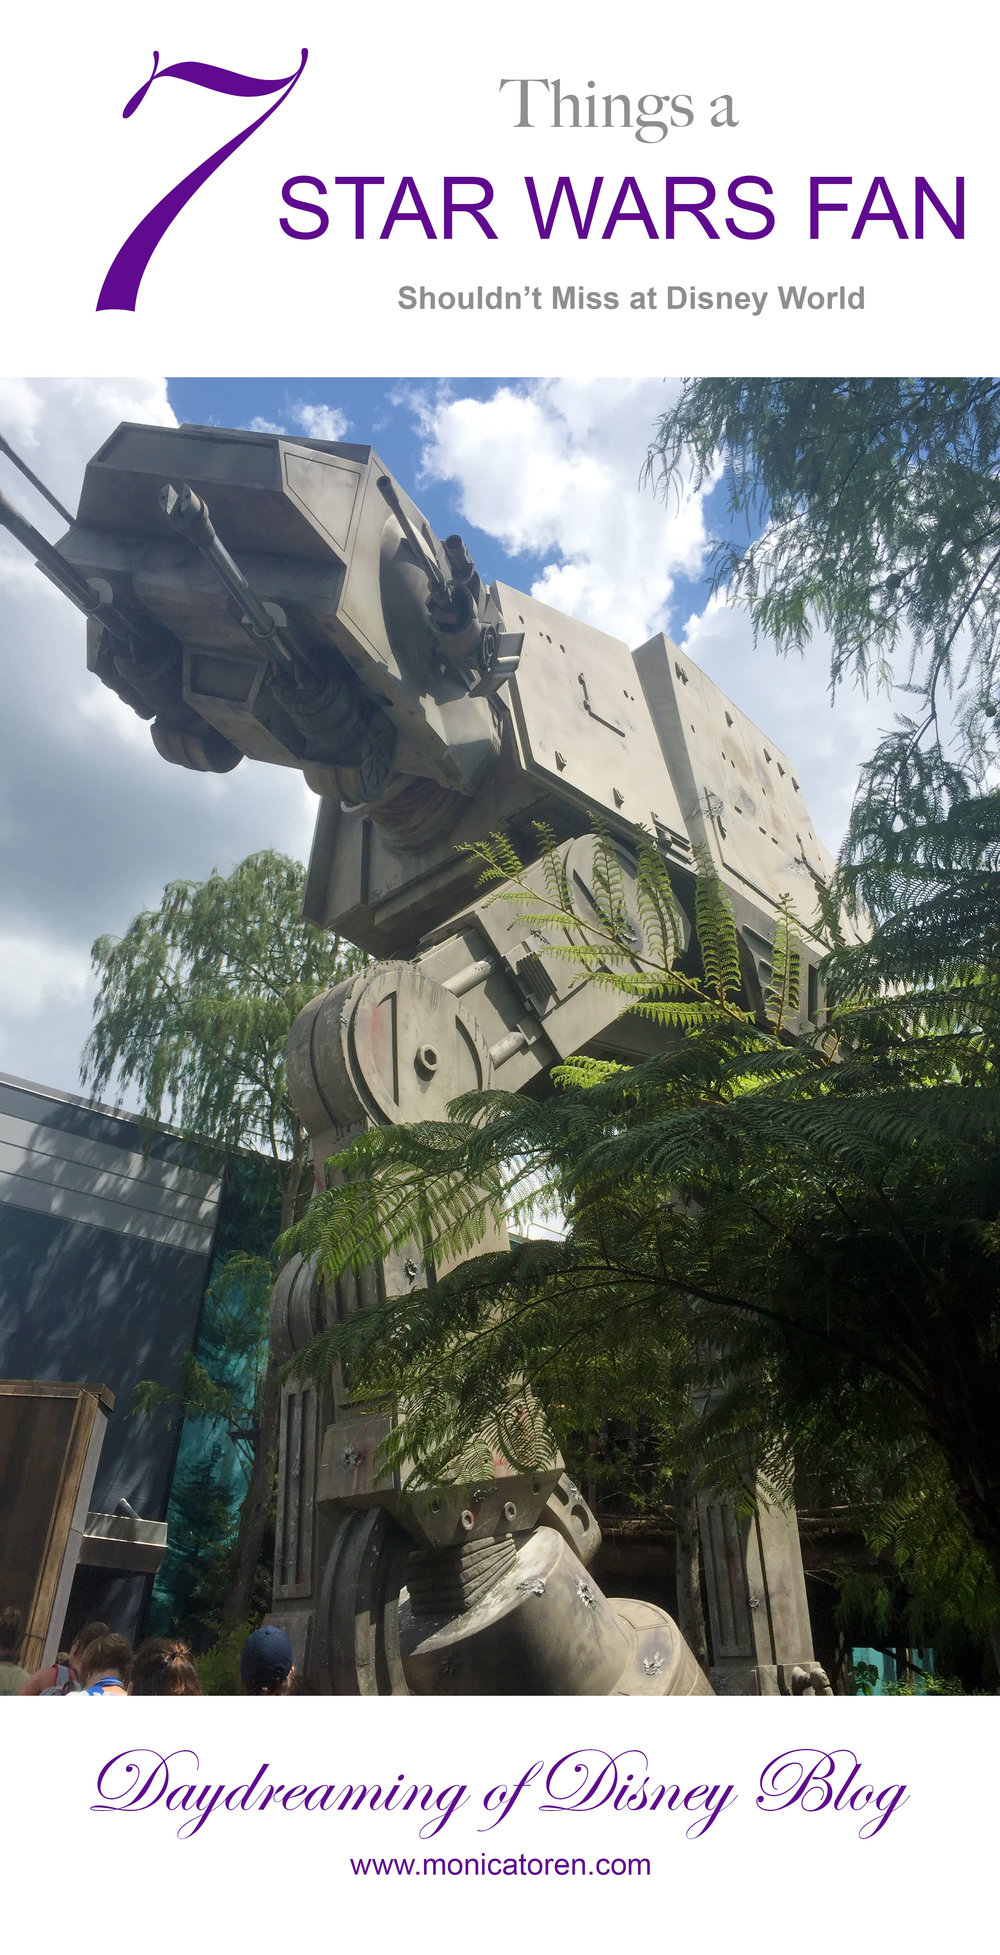 Daydreaming of Disney Blog - 7 Things a Star Wars Fan Shouldn't Miss at Disney World - http://www.monicatoren.com